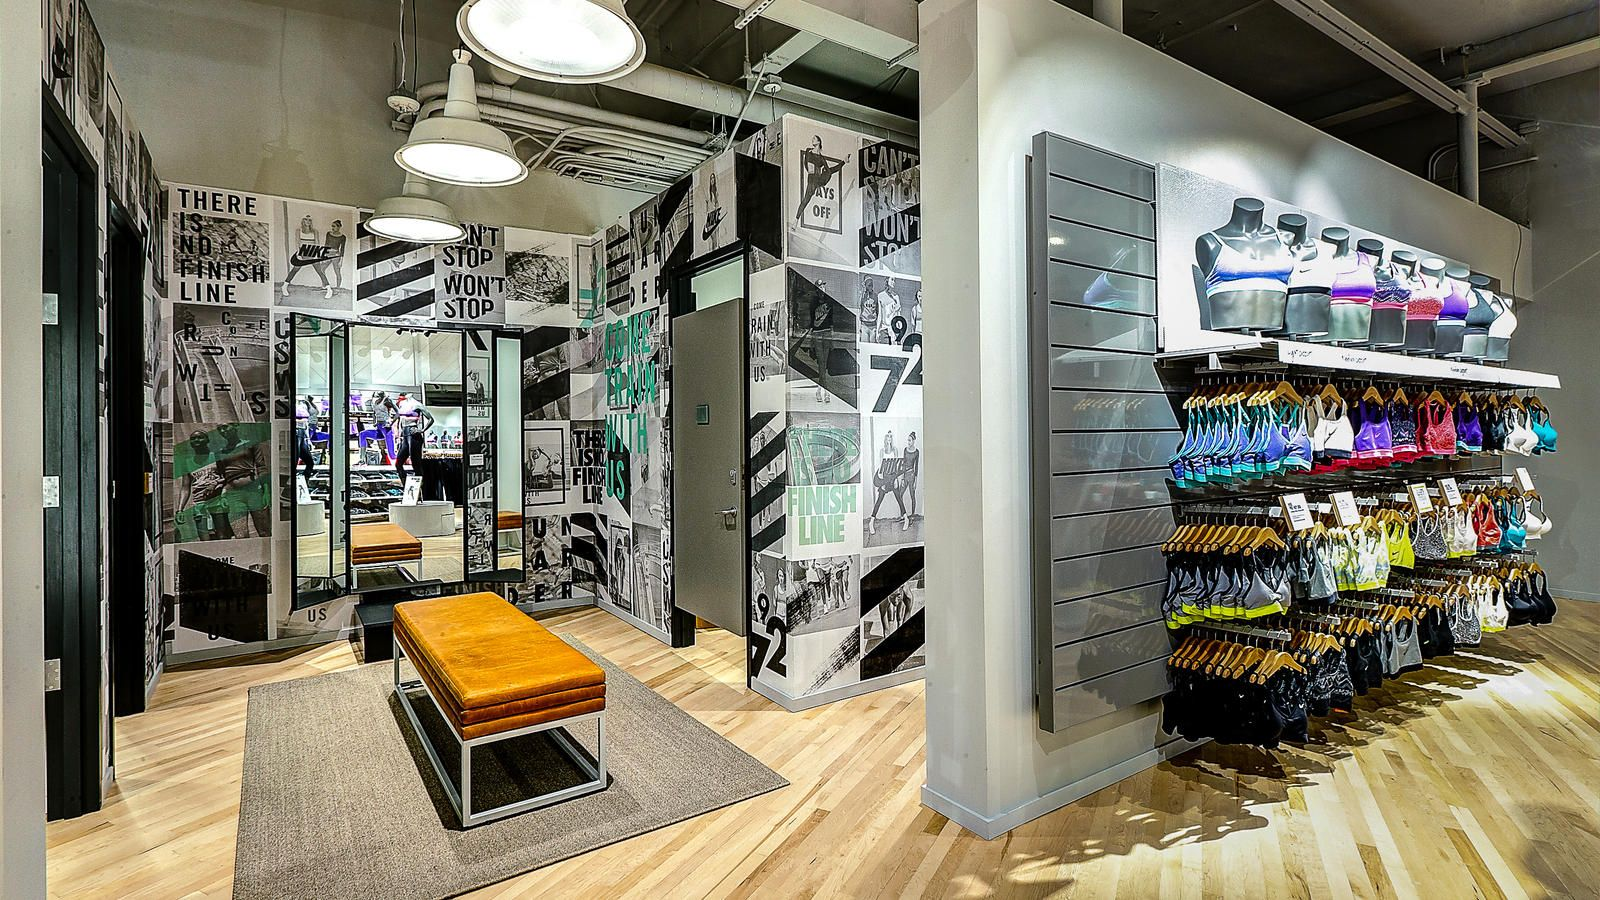 b8d4281fffa80 Nike News - Nike women's-only store with fitness studio opens in Newport  Beach